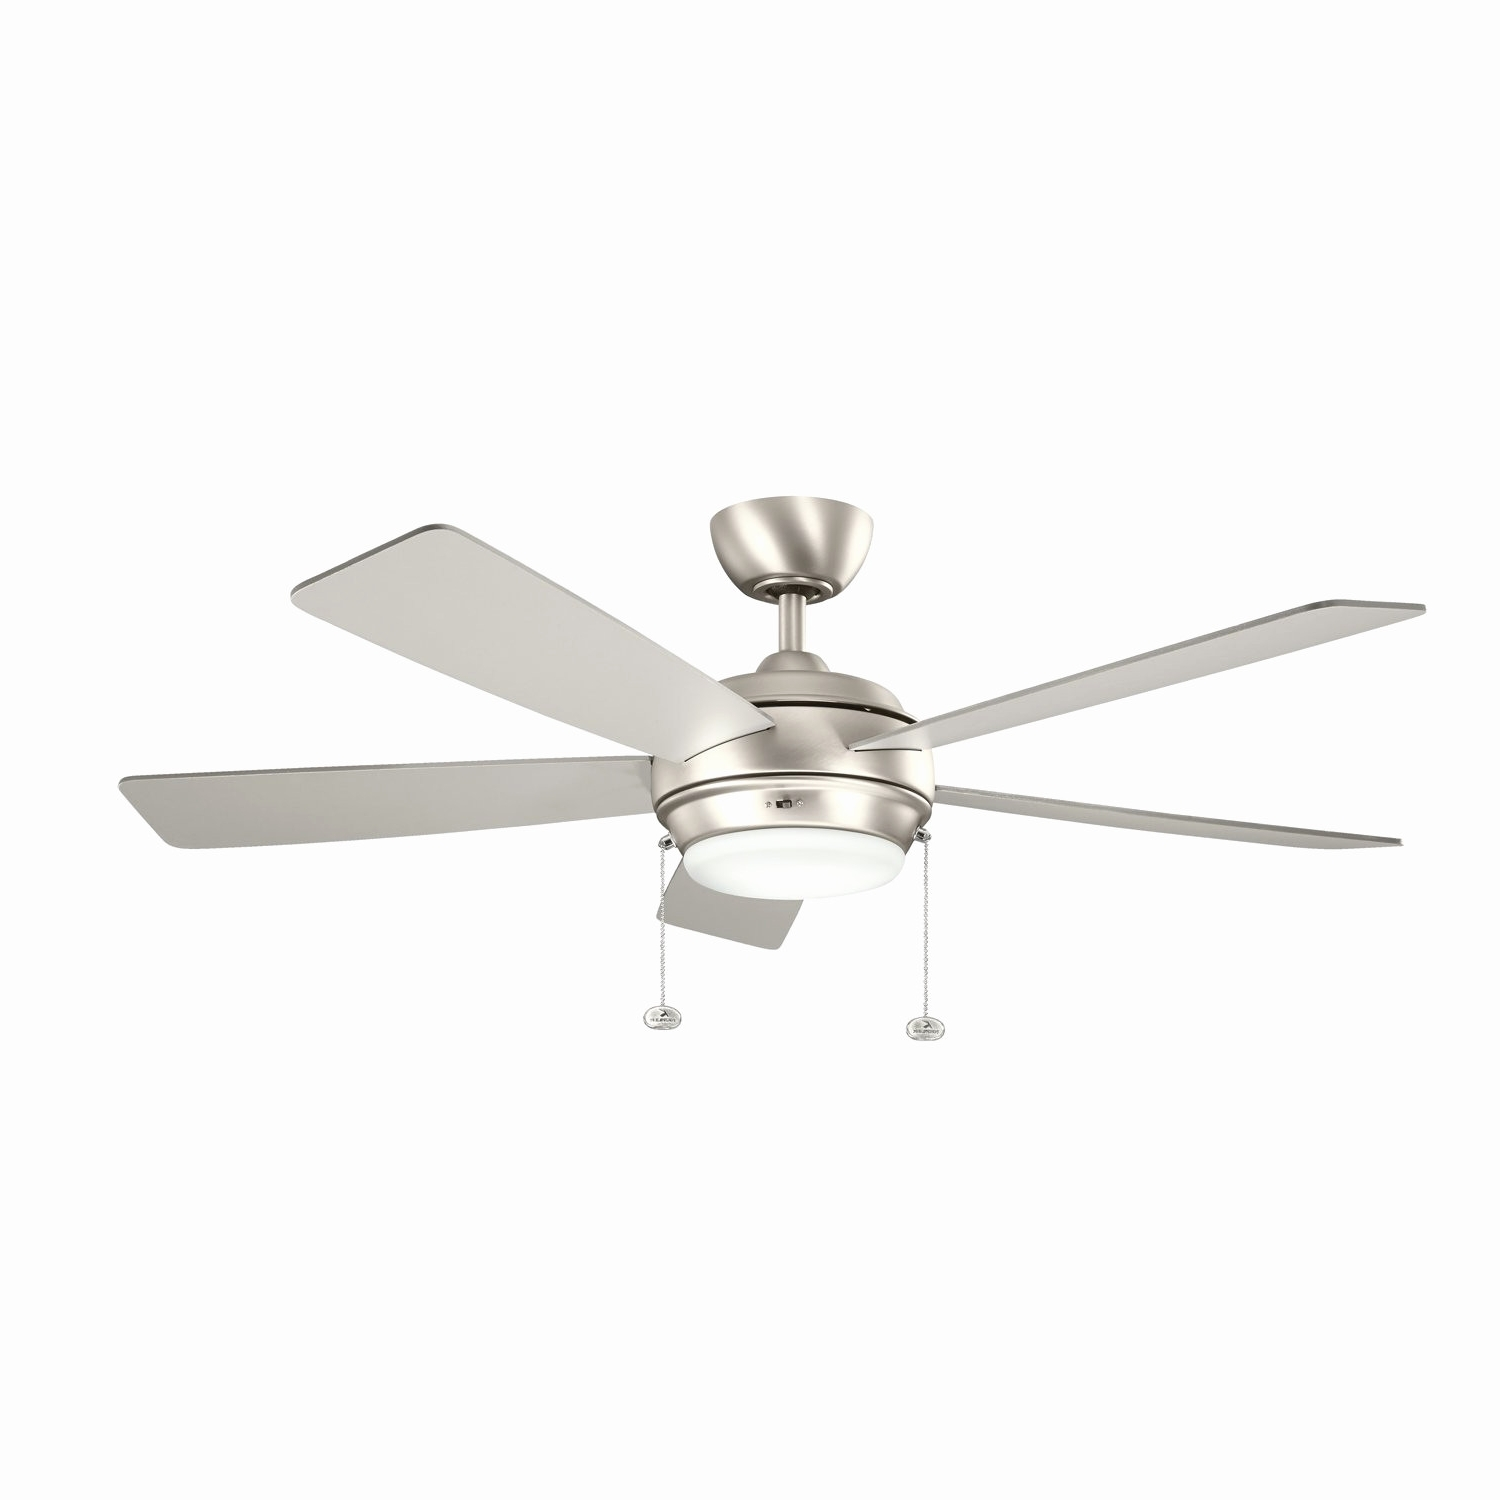 Newest White Outdoor Ceiling Fan Beautiful Best Downrod Ceiling Fan 9 S In Outdoor Ceiling Fans With Downrod (View 9 of 20)